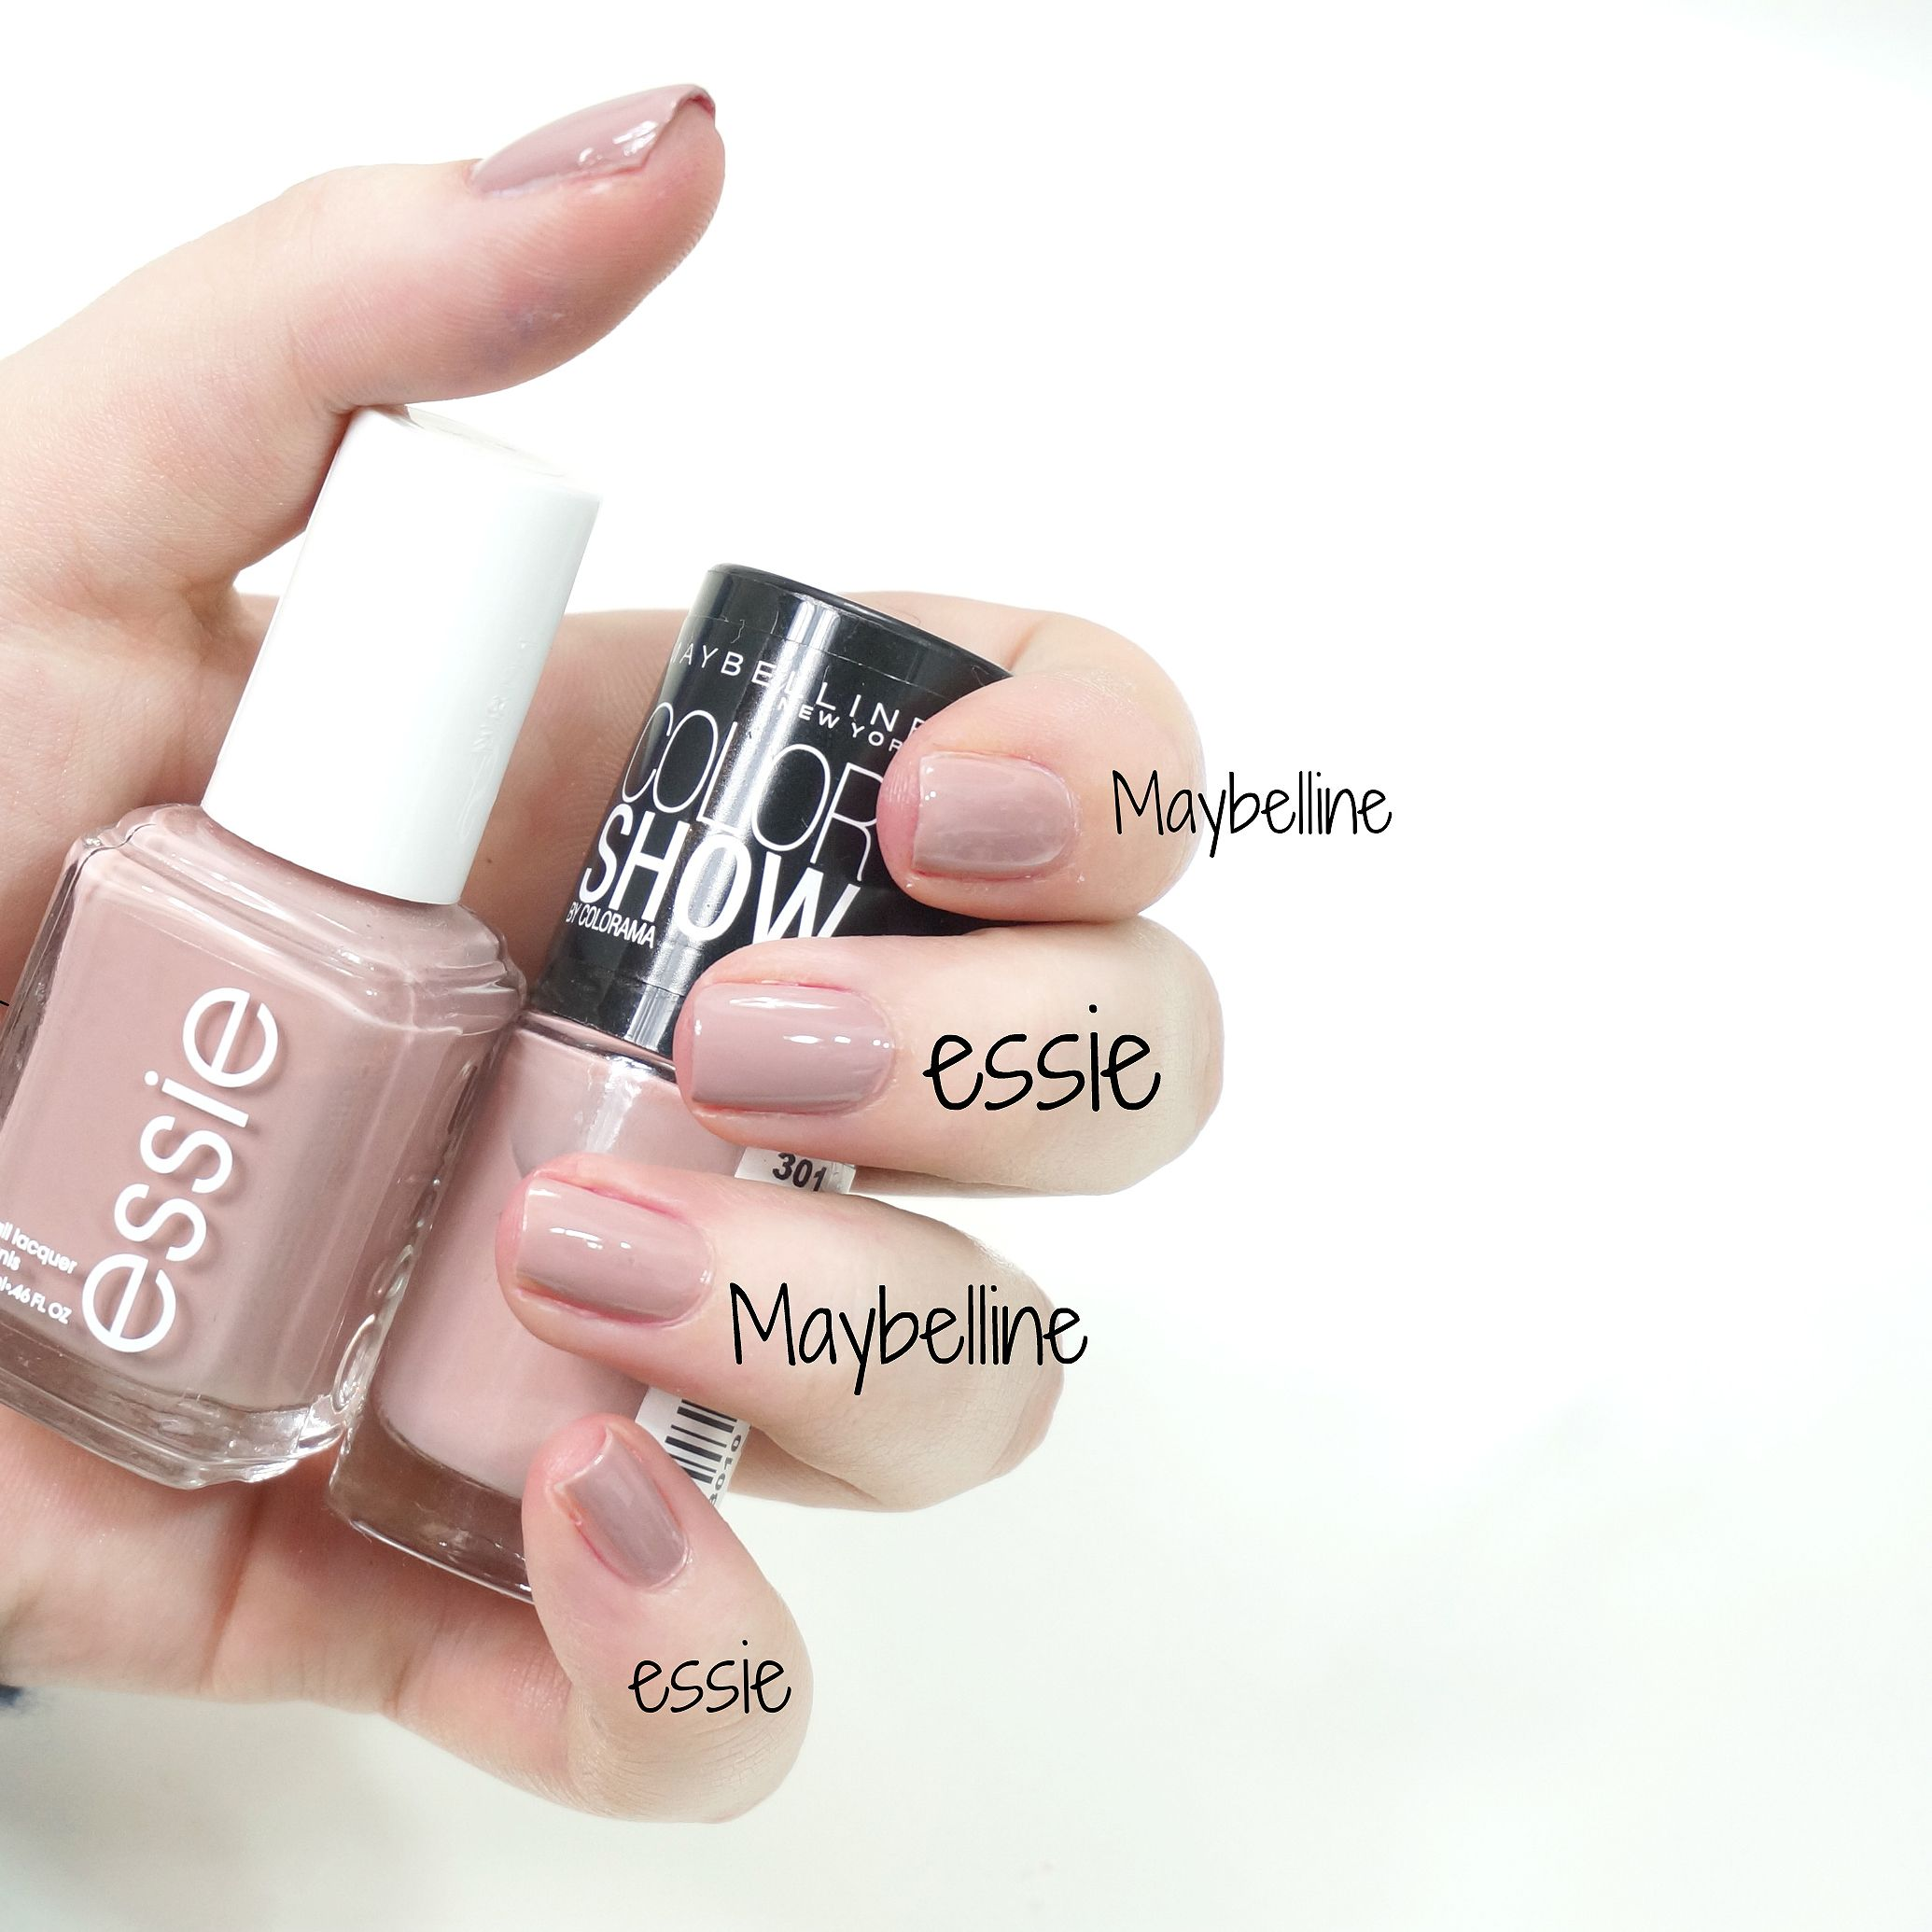 essie ladylike Dupe: Maybelline '301 love this sweater\':http://amzn ...